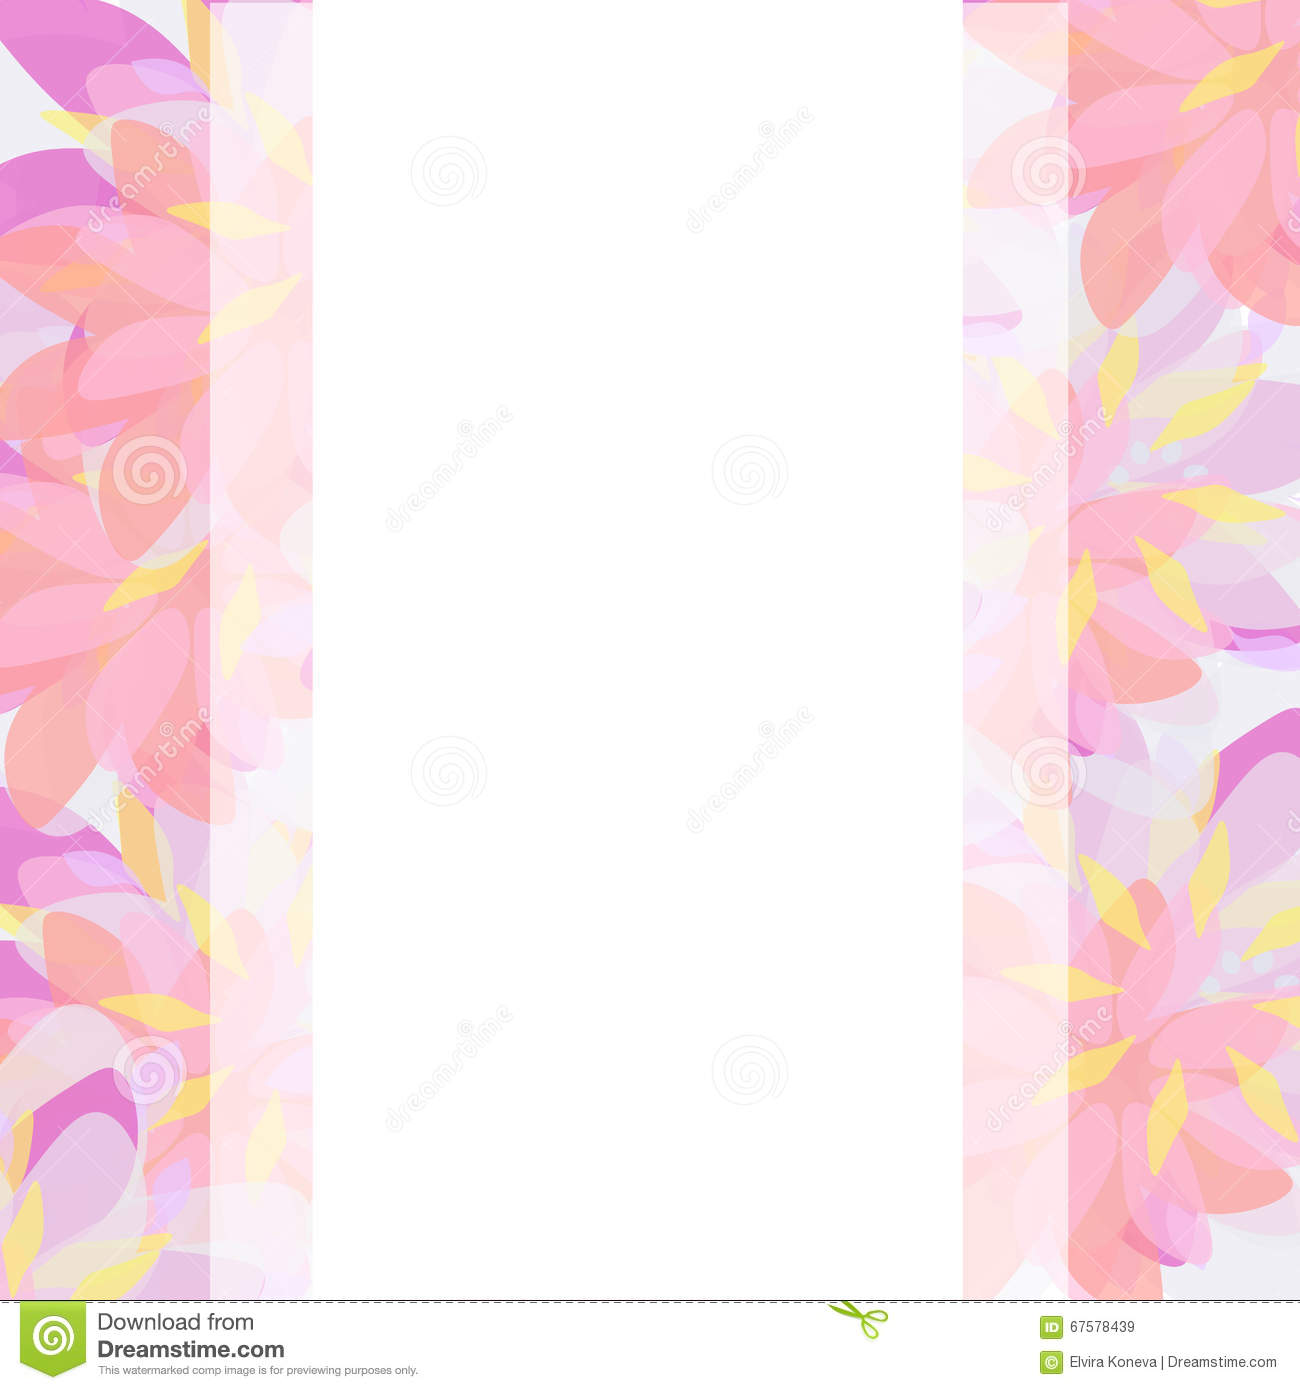 vector background template wedding or birthday invitation abstract